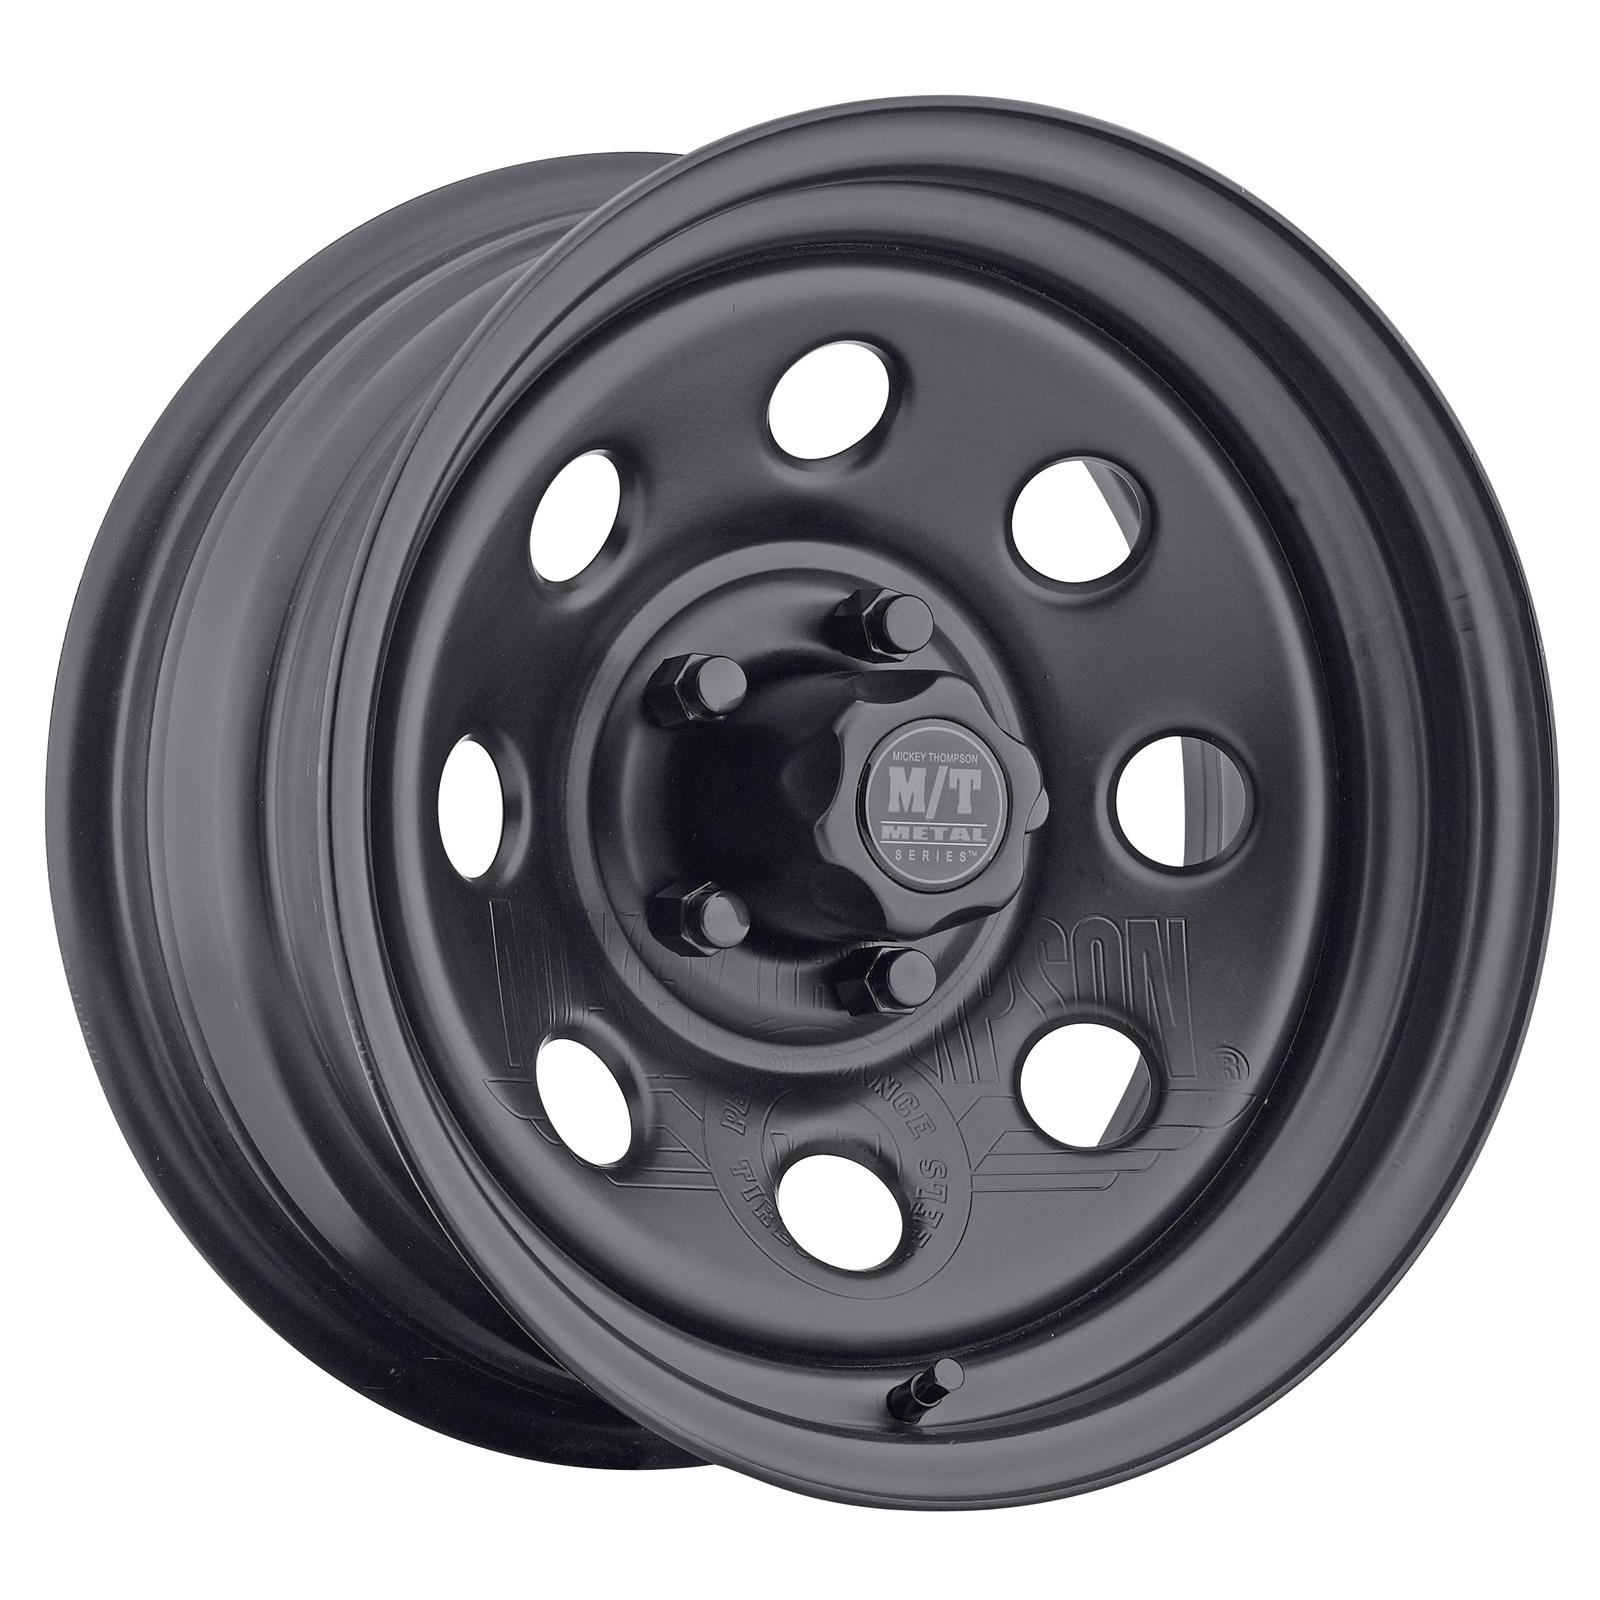 Mickey Thompson Metal Mt 28 Series Black Wheels 90000001684 Free 1955 Ford F100 With Thompsons Shipping On Orders Over 49 At Summit Racing